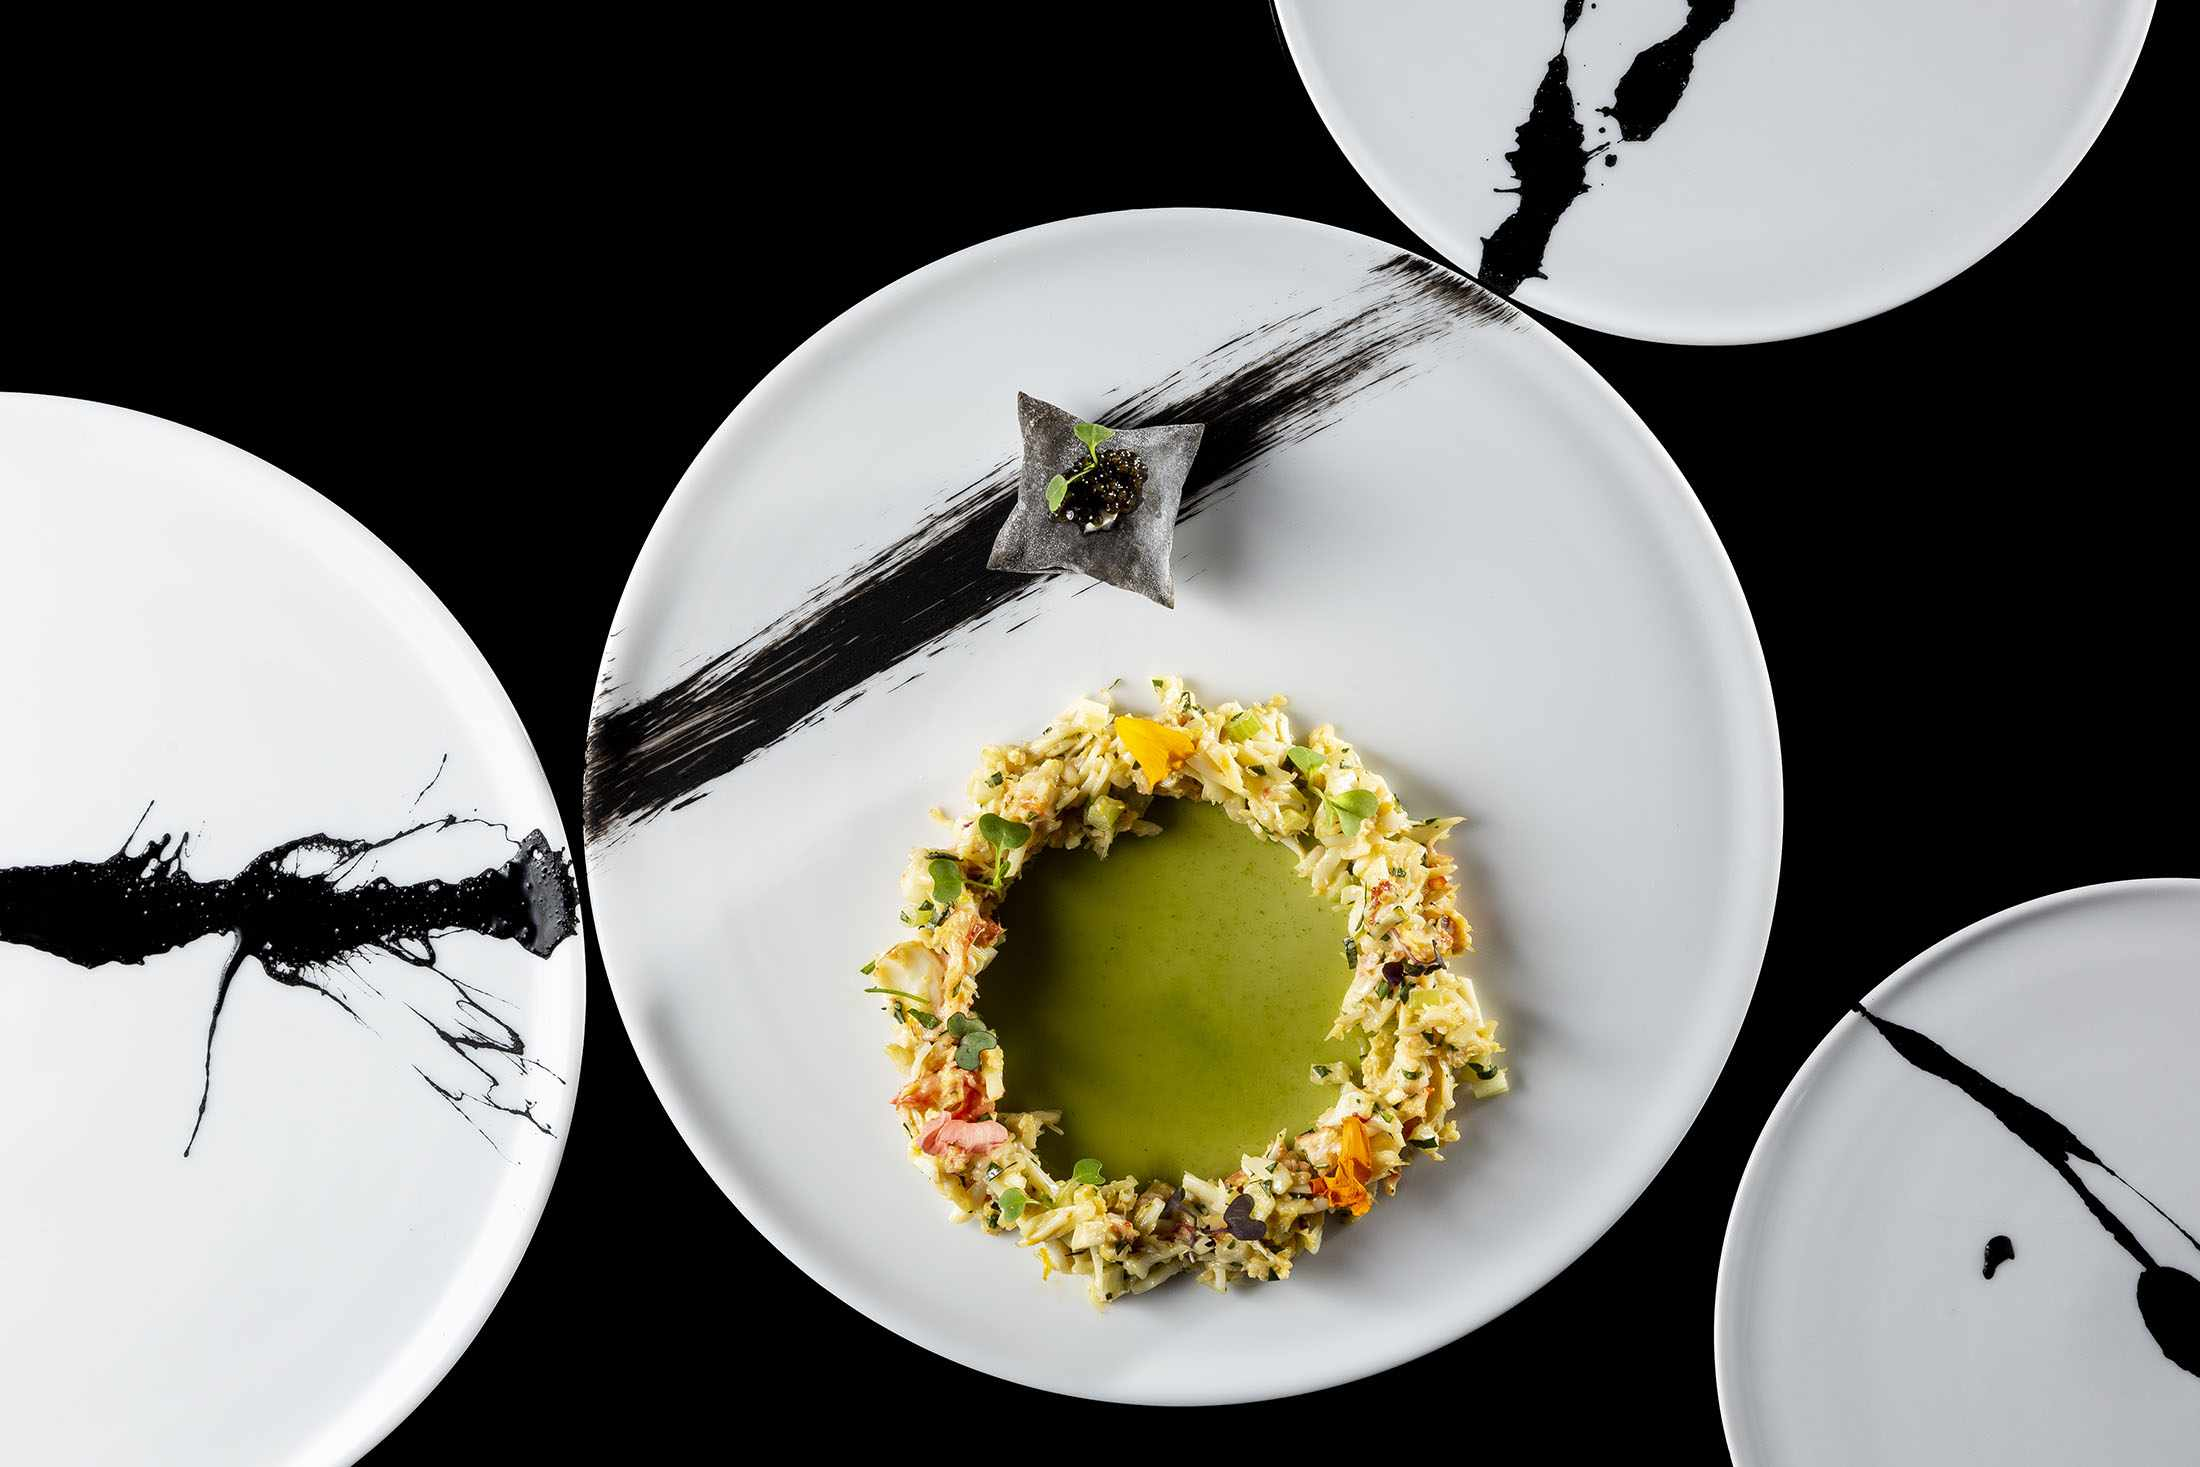 Gree alaskan king crab jelly crap on a black and white plate